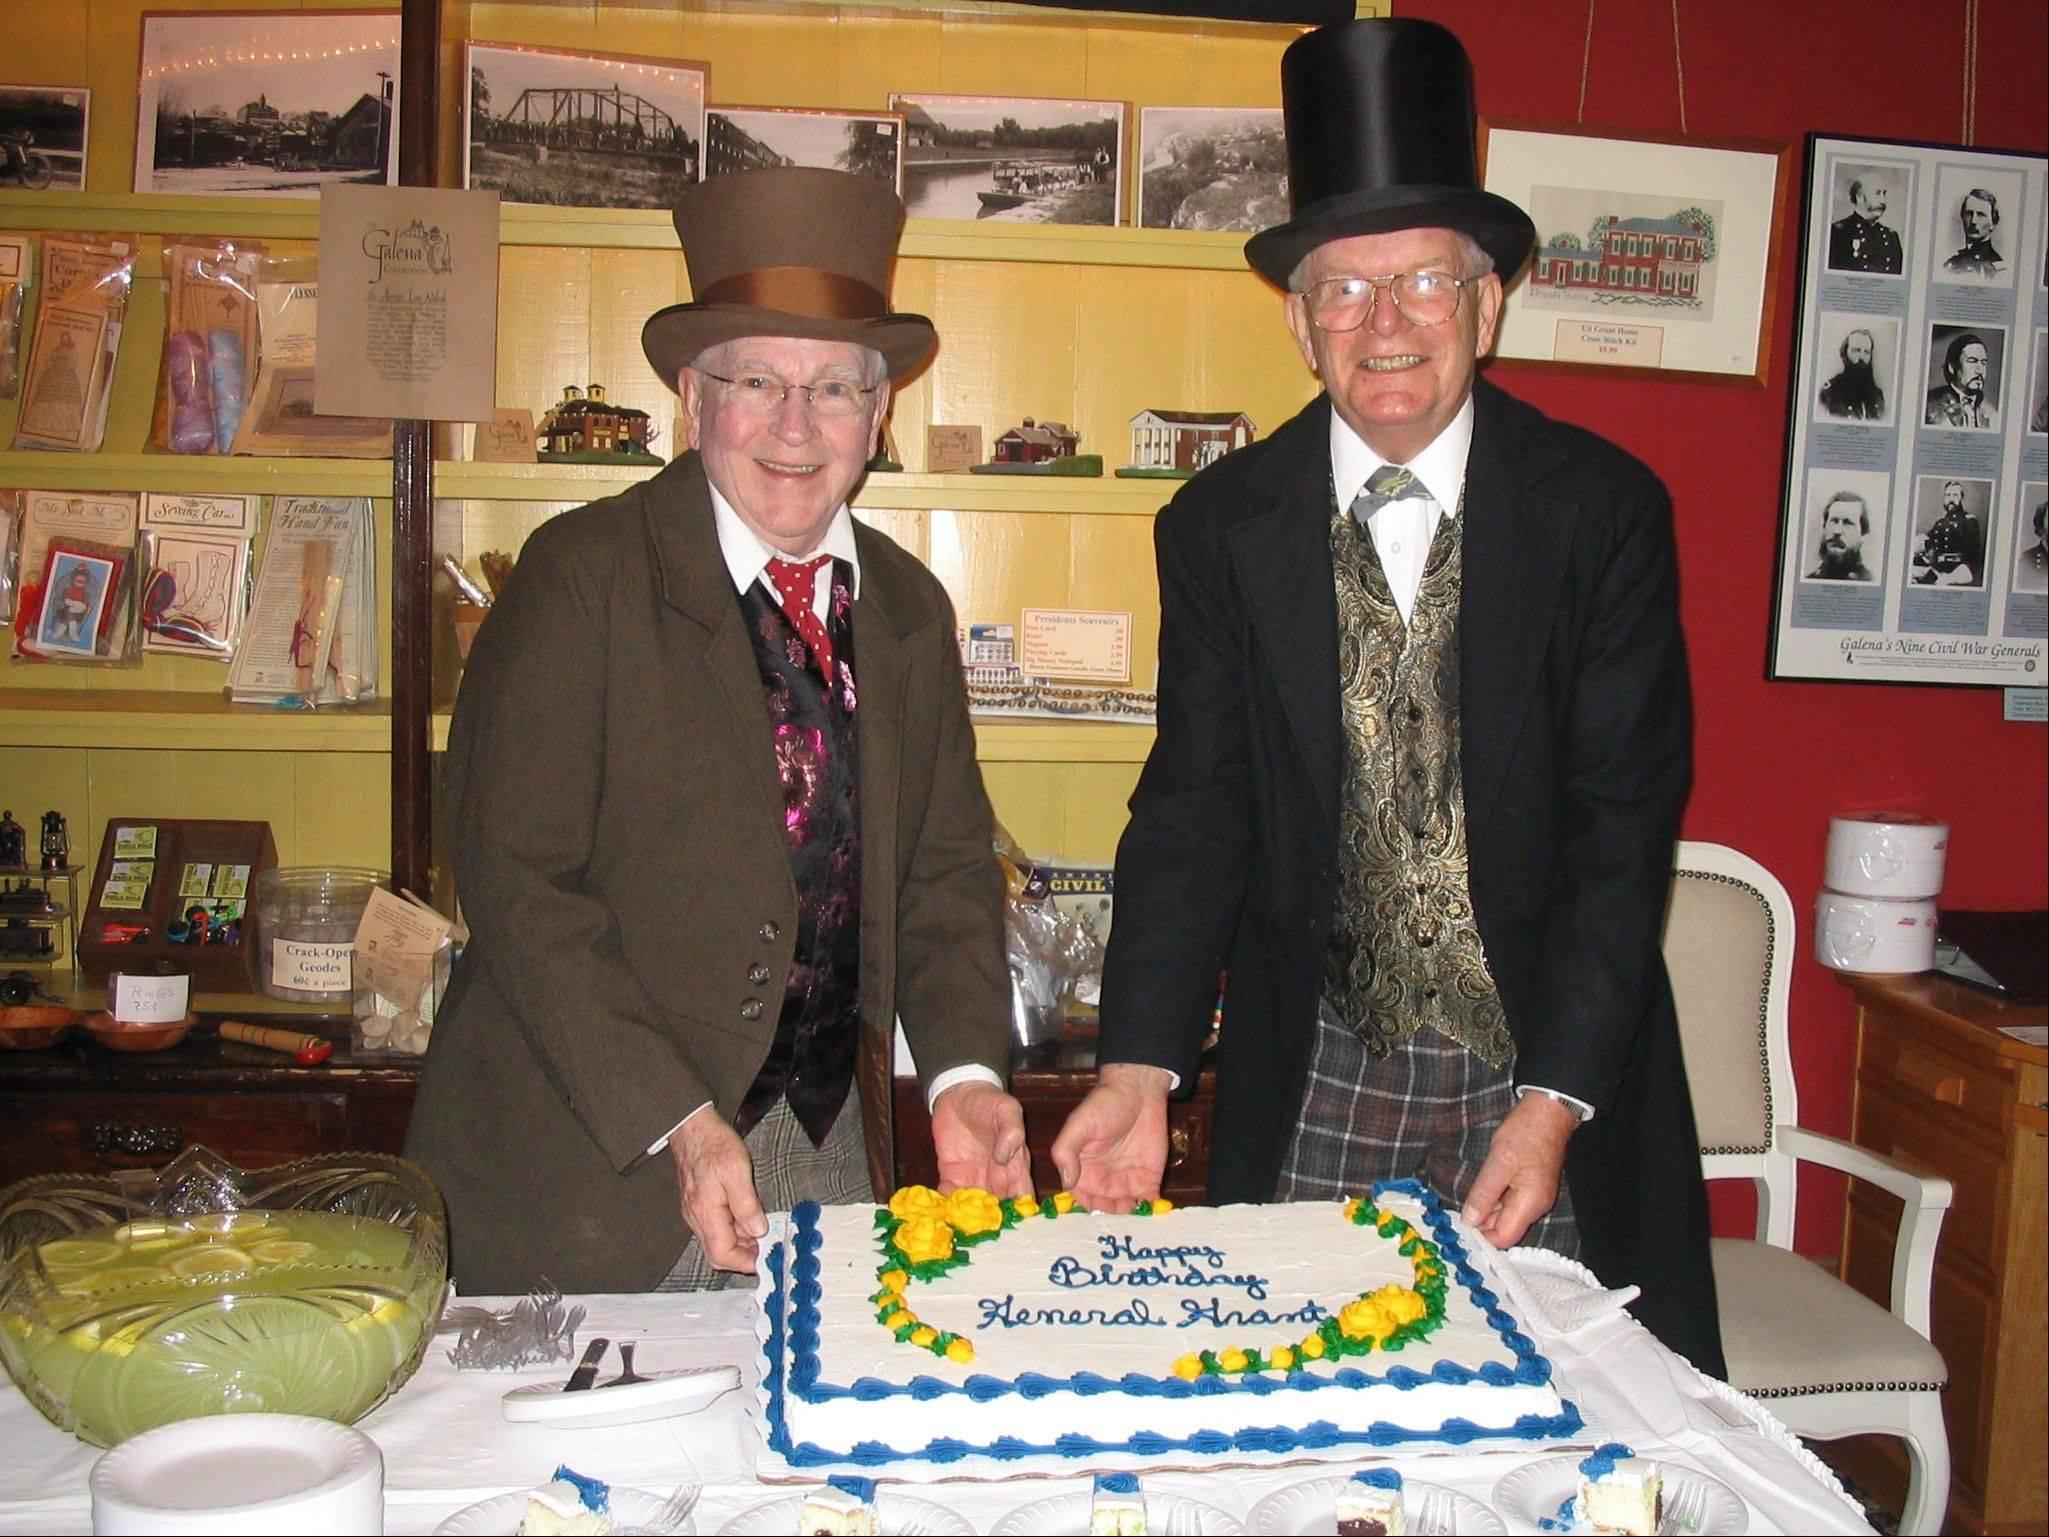 Bob Palmer and Jack Kirkby display General Grant's birthday cake at the Galena & U.S. Grant Museum during the Grant Birthday Weekend, which runs from Friday through Sunday, April 20-22.